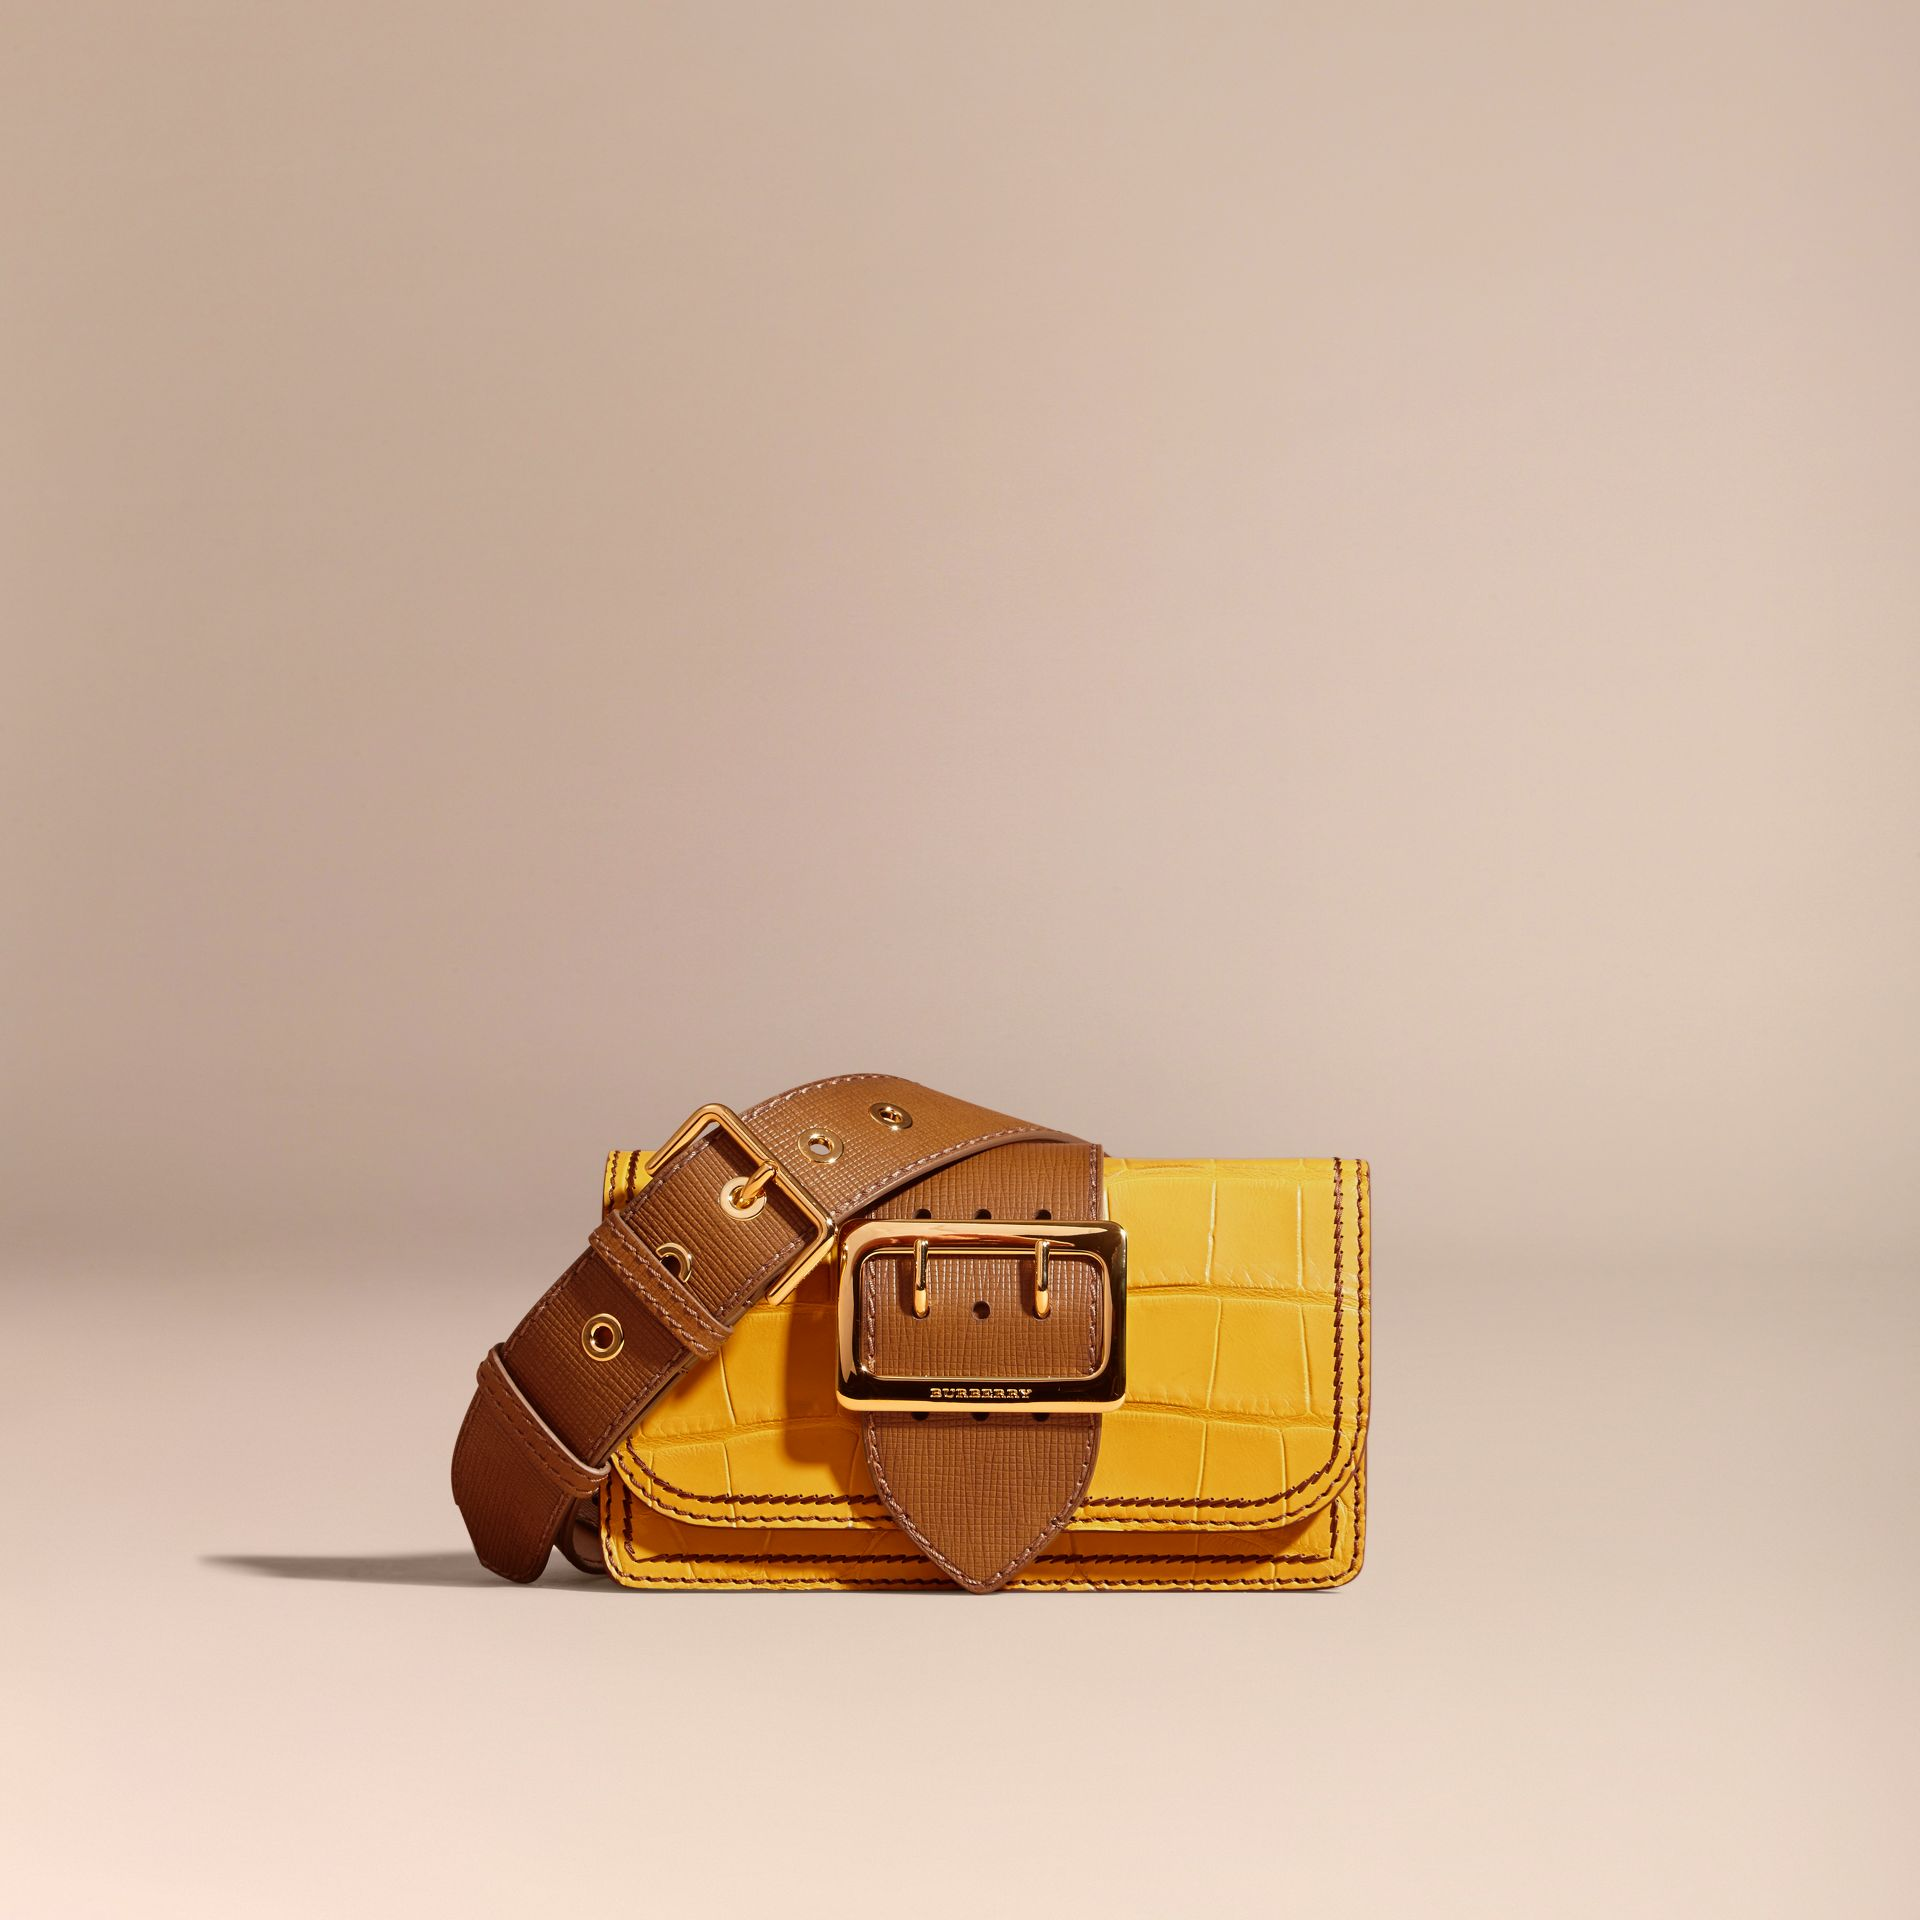 The Small Buckle Bag in Alligator and Leather in Citrus Yellow / Tan - Women | Burberry - gallery image 9